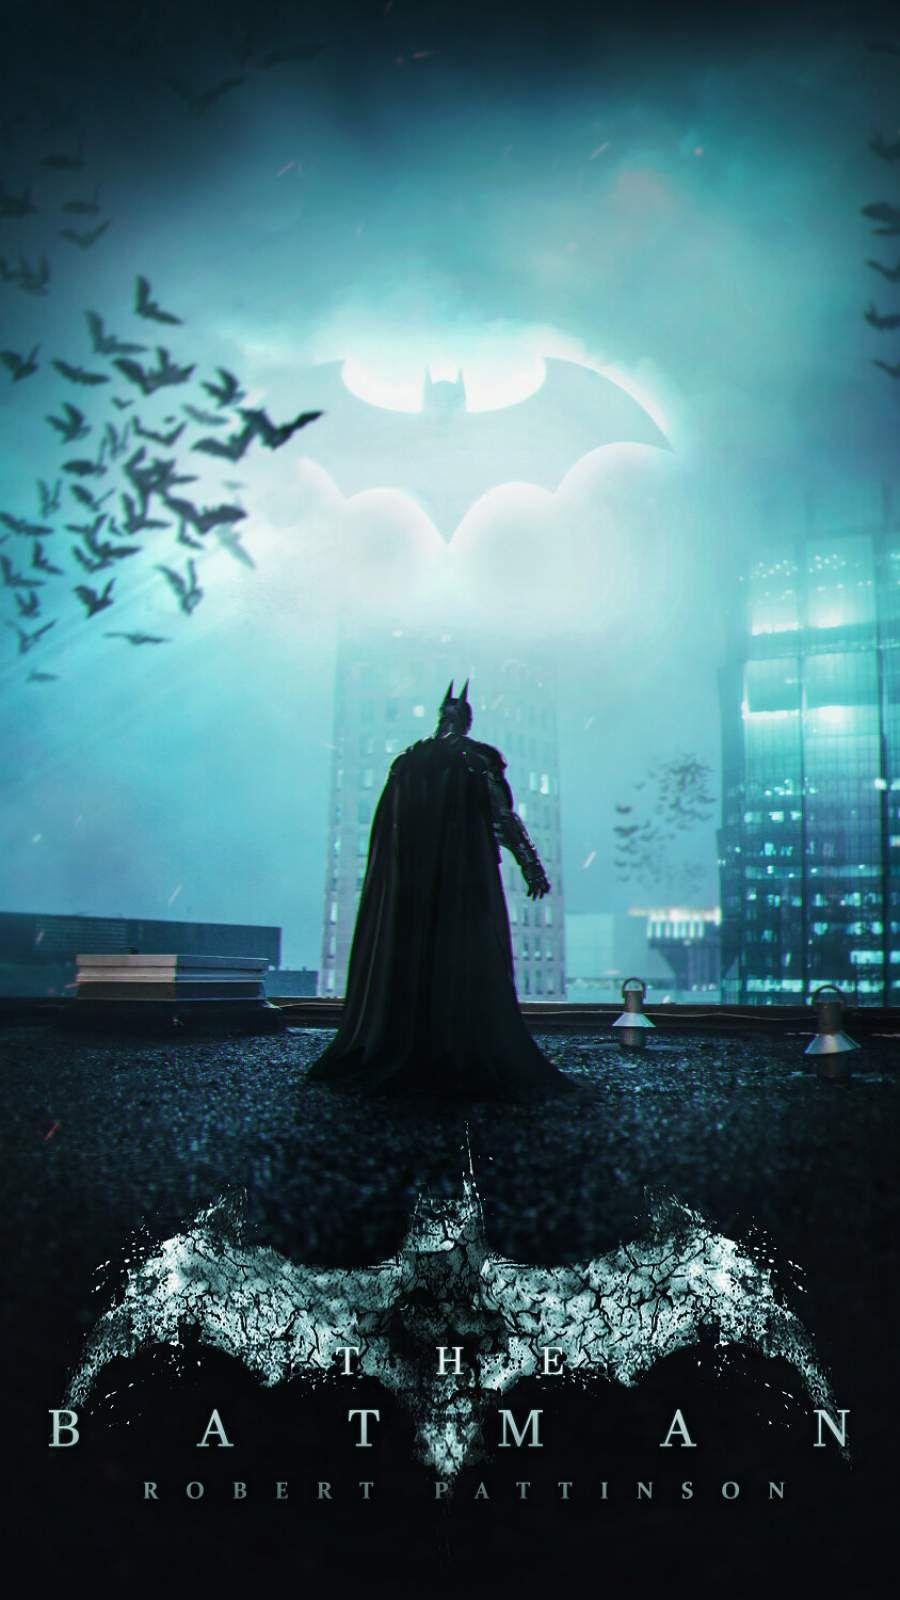 The Batman Robert Pattinson Iphone Wallpaper Batman Wallpaper Iphone Batman Wallpaper Batman Artwork